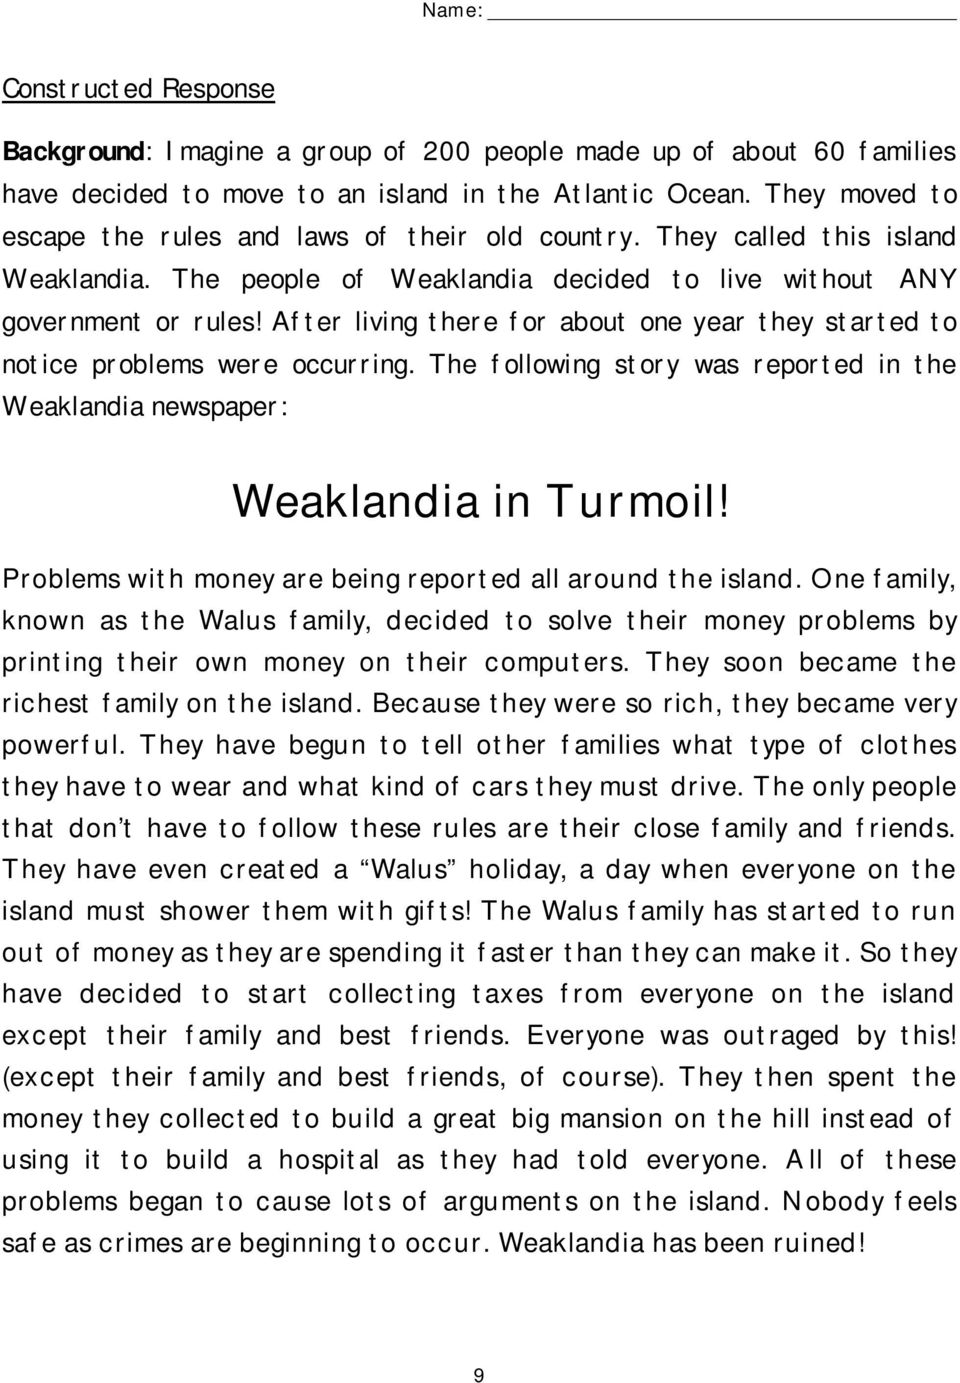 After living there for about one year they started to notice problems were occurring. The following story was reported in the Weaklandia newspaper: Weaklandia in Turmoil!